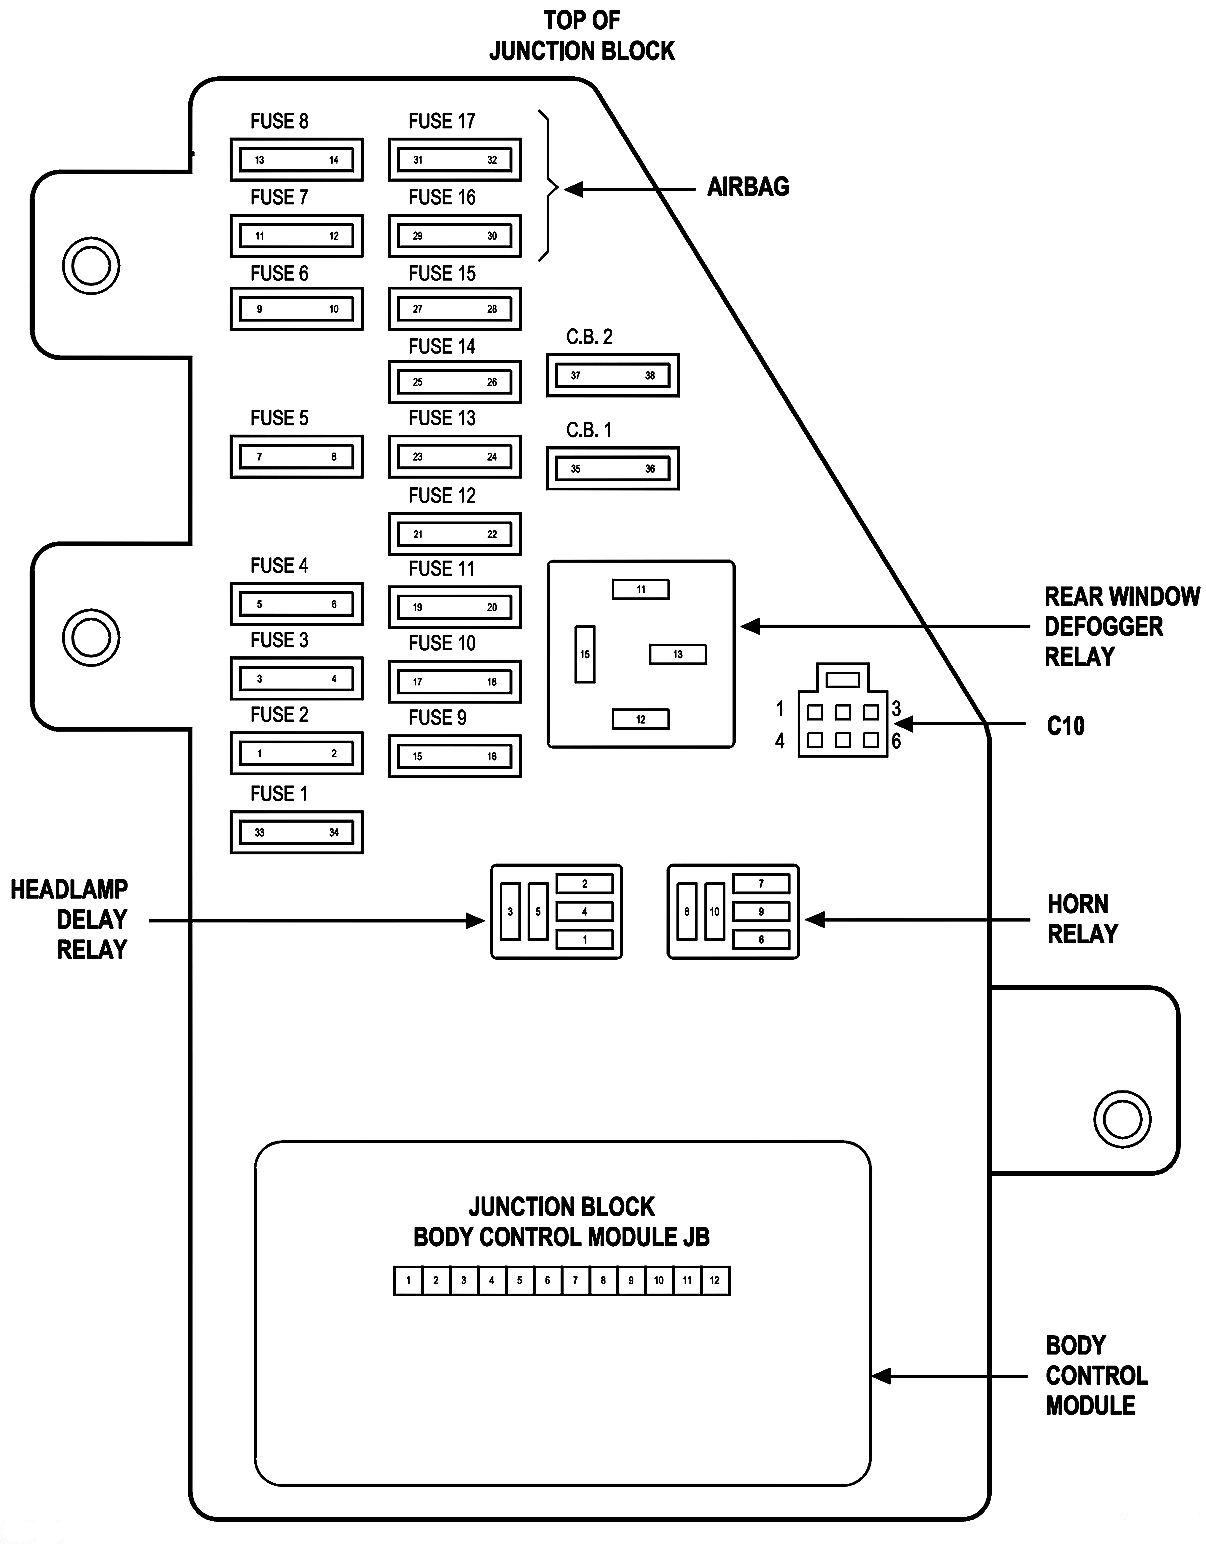 2006 chrysler sebring fuse box diagram DUYReBM 2008 chrysler pt cruiser fuse box wiring diagram simonand 2007 chrysler pacifica fuse box at mifinder.co